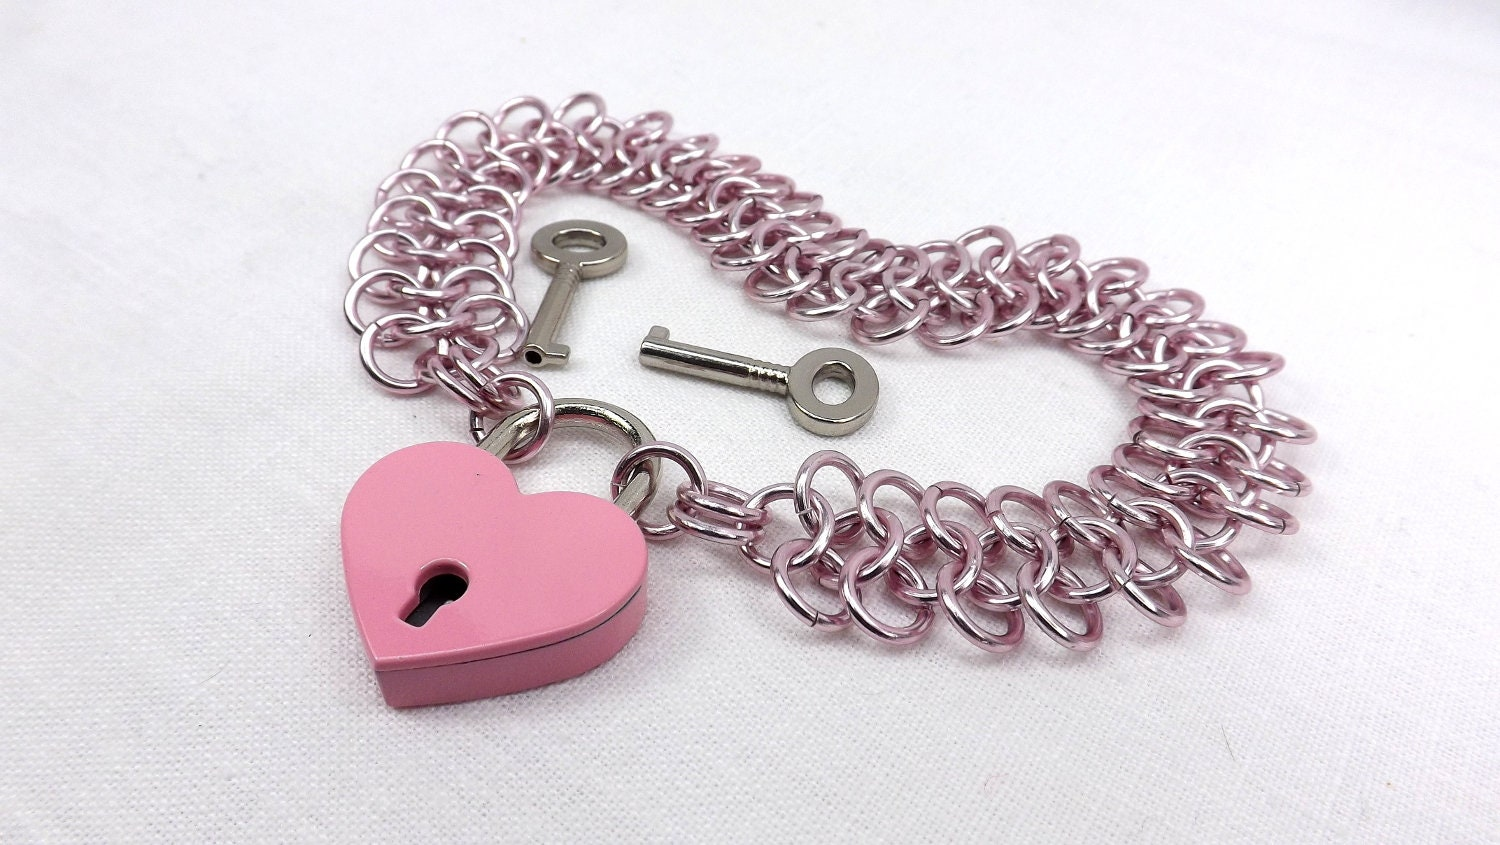 Pink locking heart with pink chain choker. Handmade chain with pink lock and key chain choker babygirl ddlg jewelry gift for her - product image